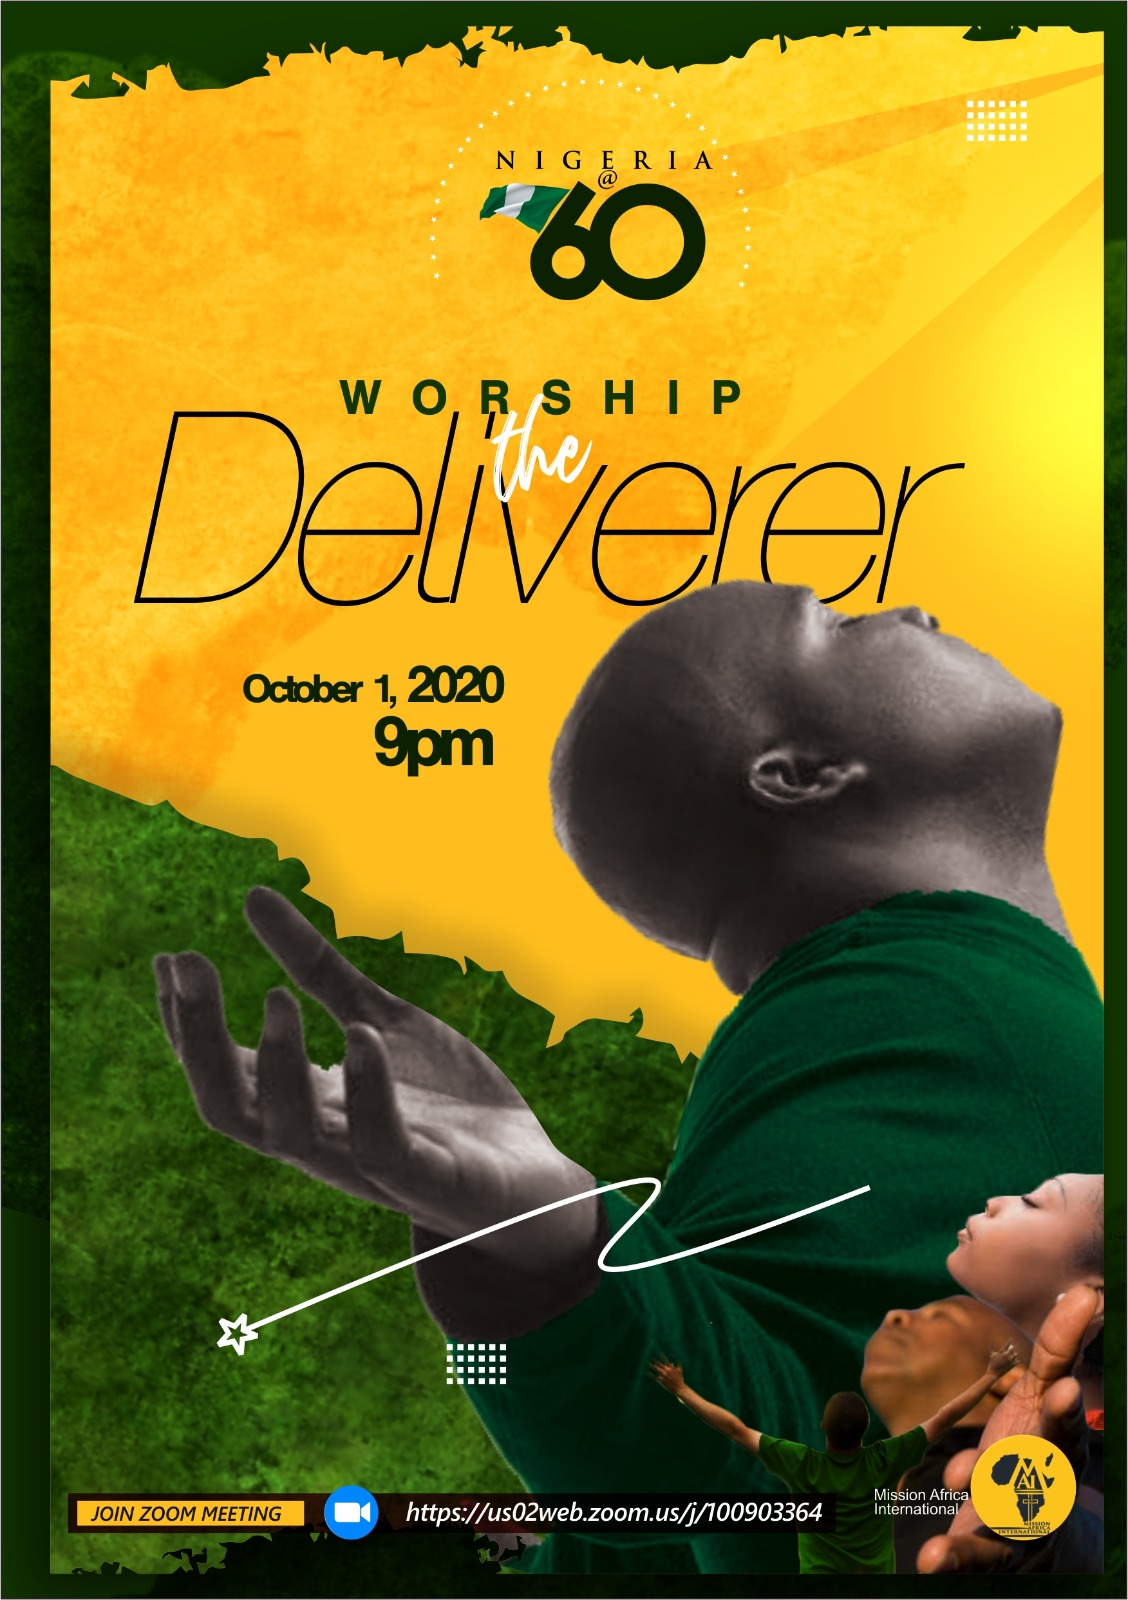 Worship the deliverer Nigeria @ 60 Mission Africa International